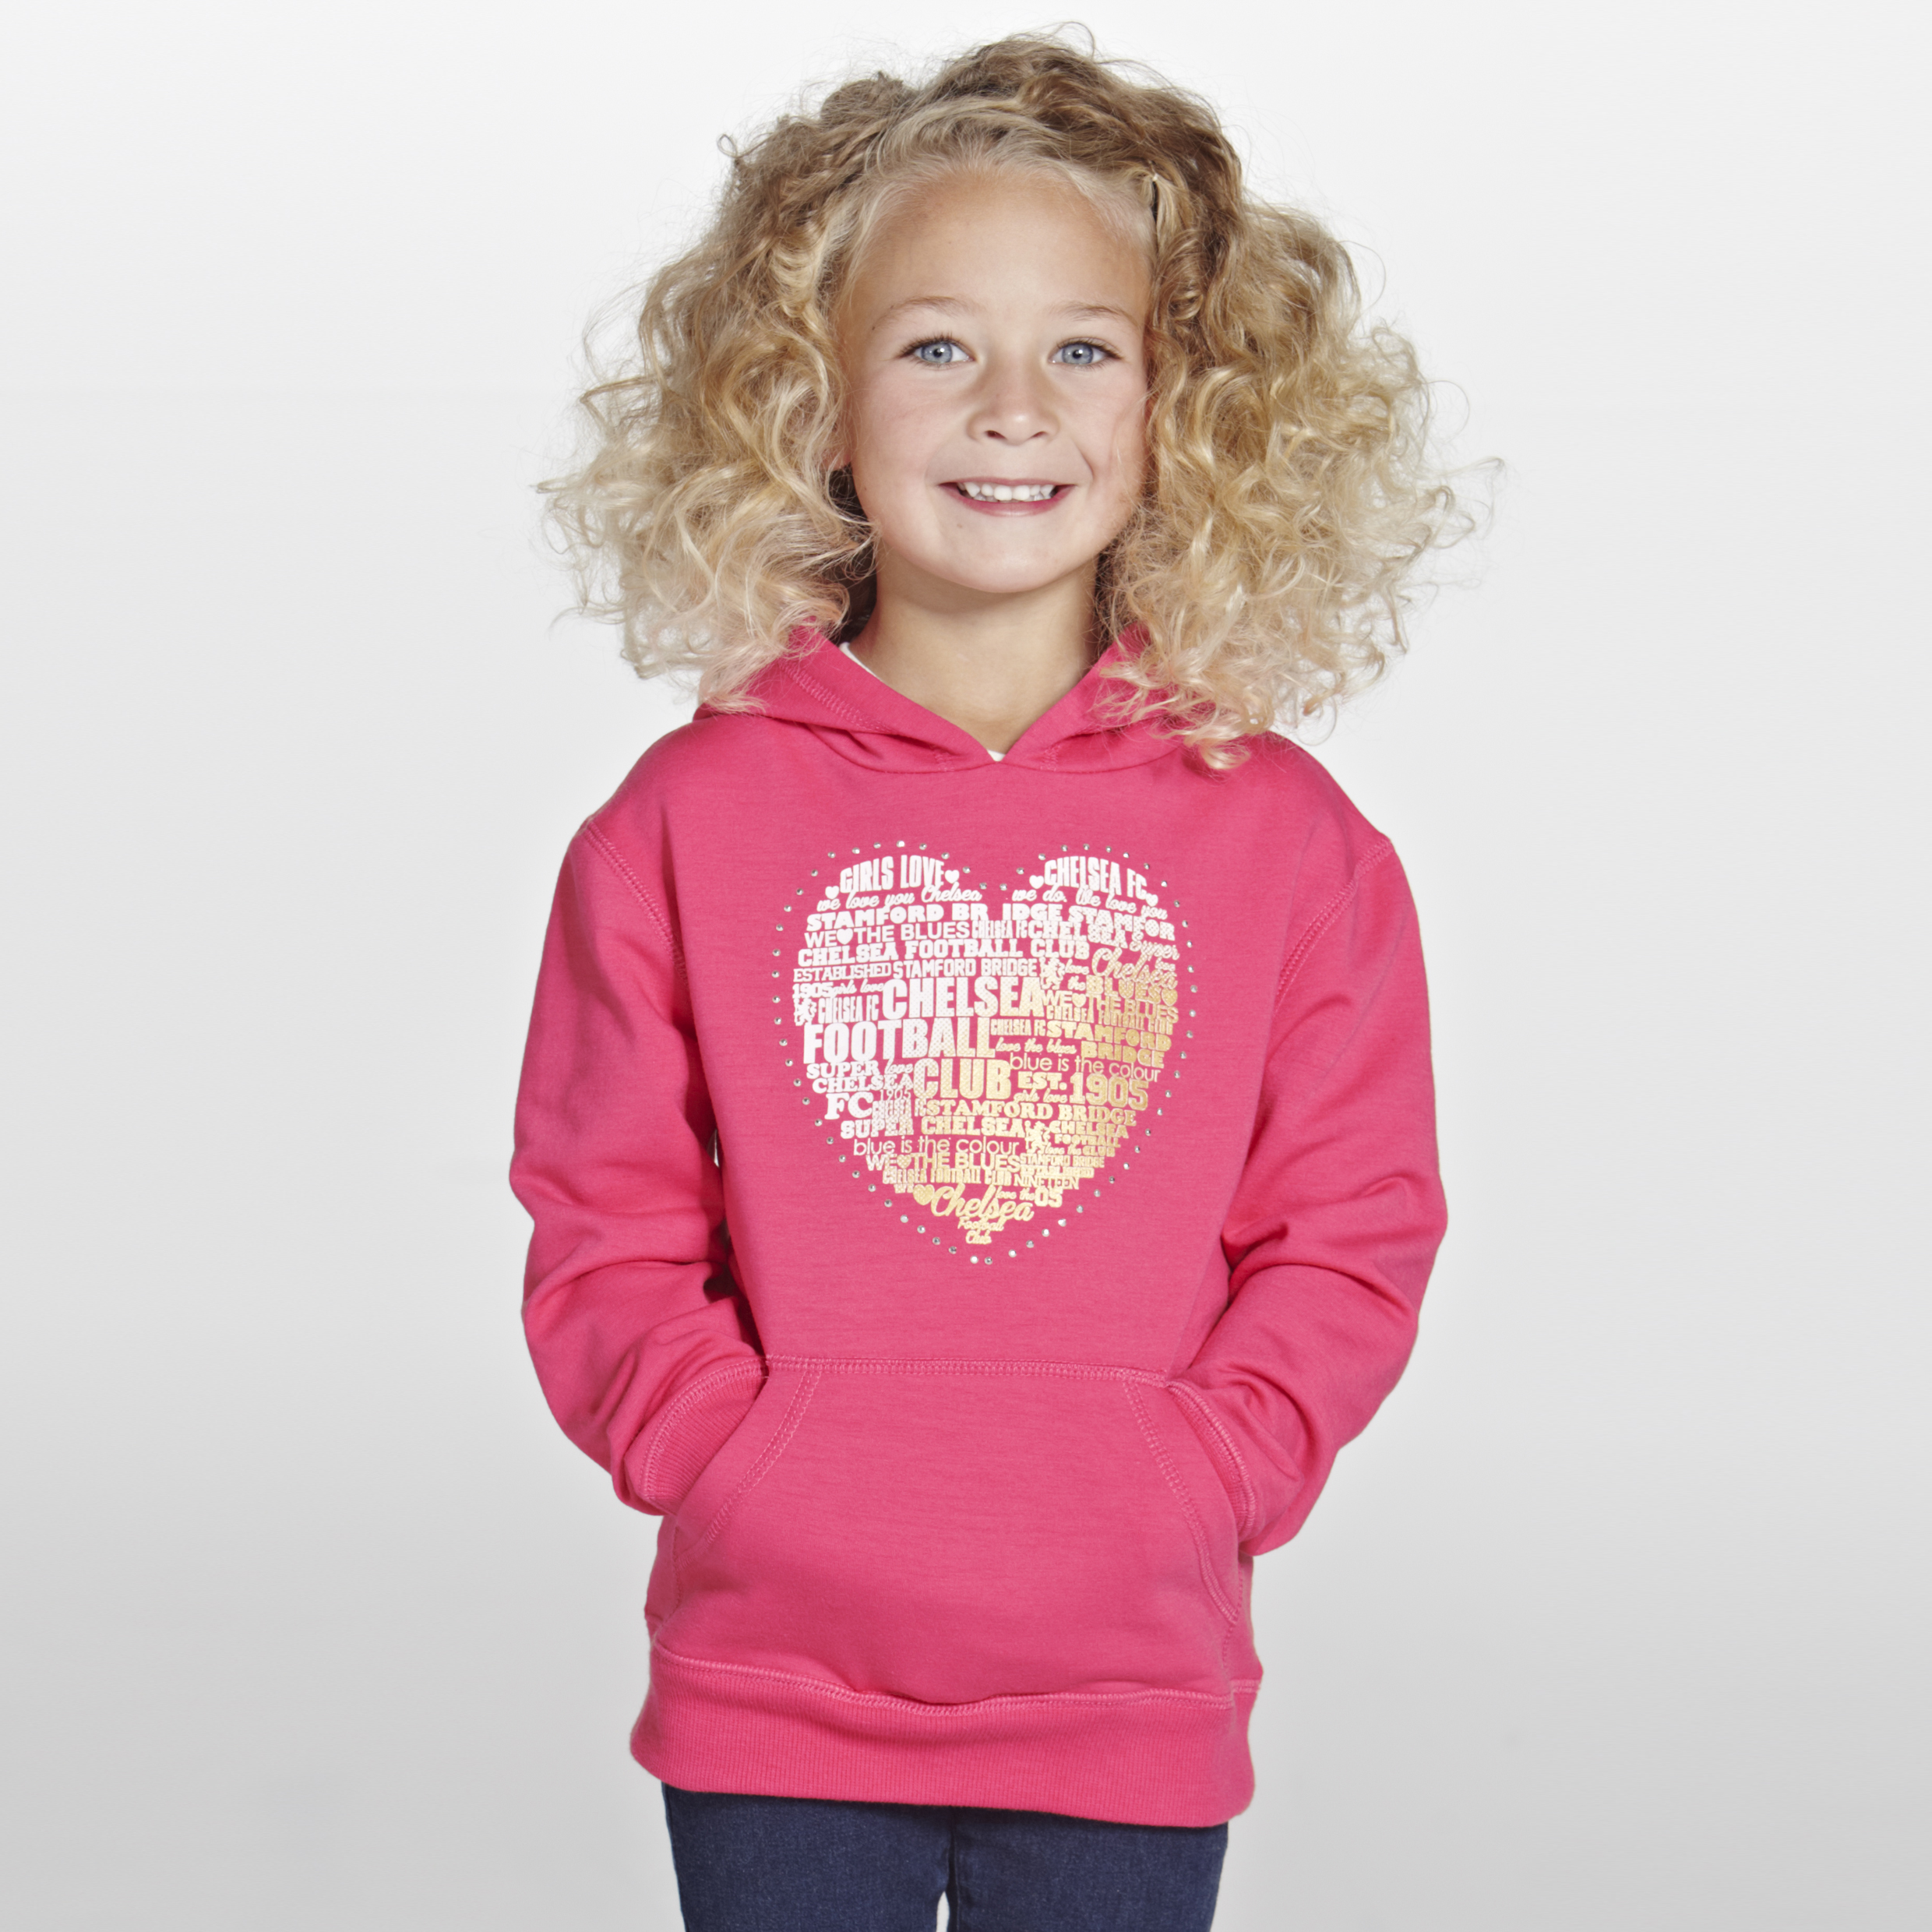 Chelsea Heart Hoodie T-Shirt - Infant Girls Pink